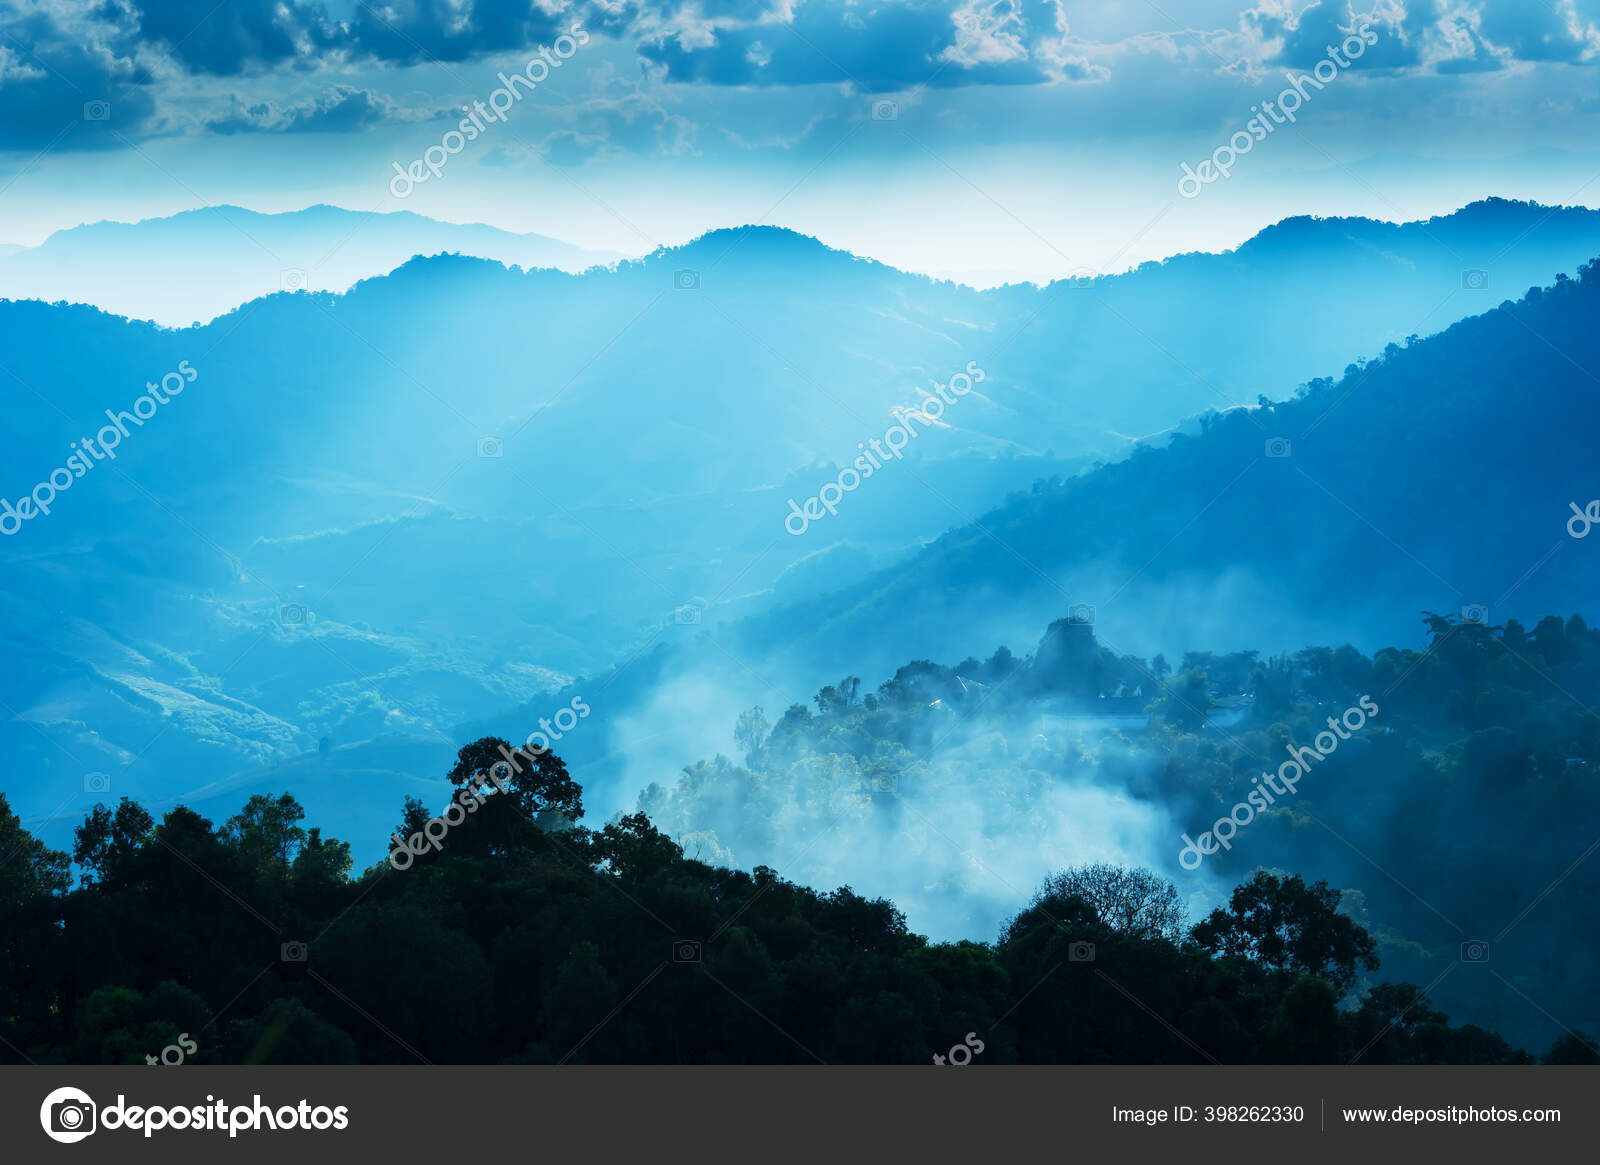 Scenery Blue Mountains Sunrise Gentle Morning Fog Blankets Village Valley Stock Photo Image By Taneso99o 398262330